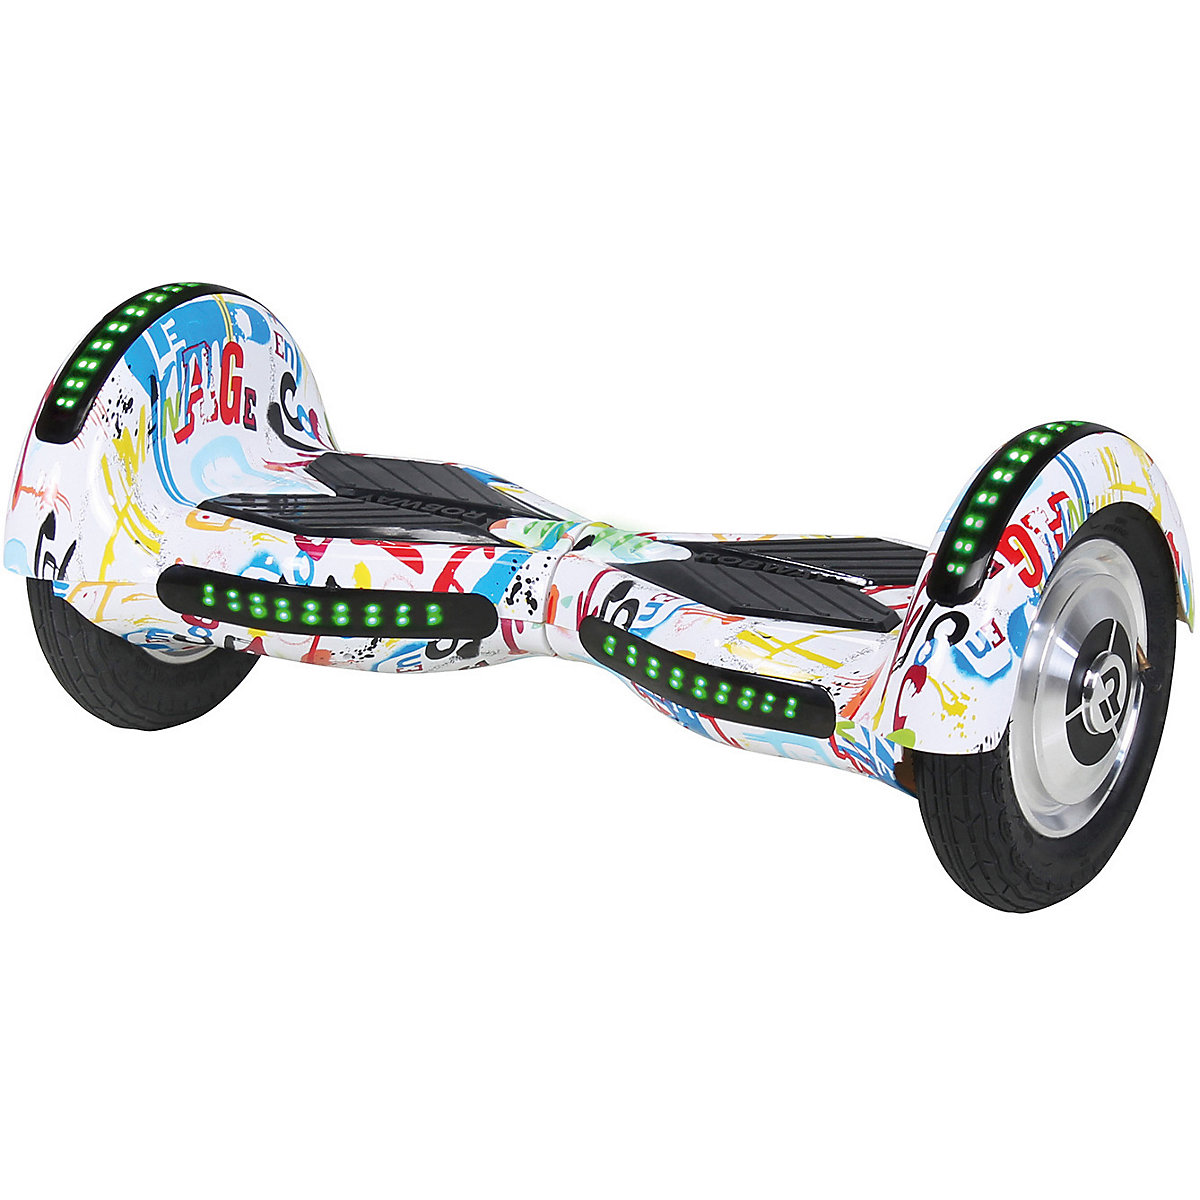 e balance hoverboard robway w3 10 zoll mit app funktion bunt mytoys. Black Bedroom Furniture Sets. Home Design Ideas